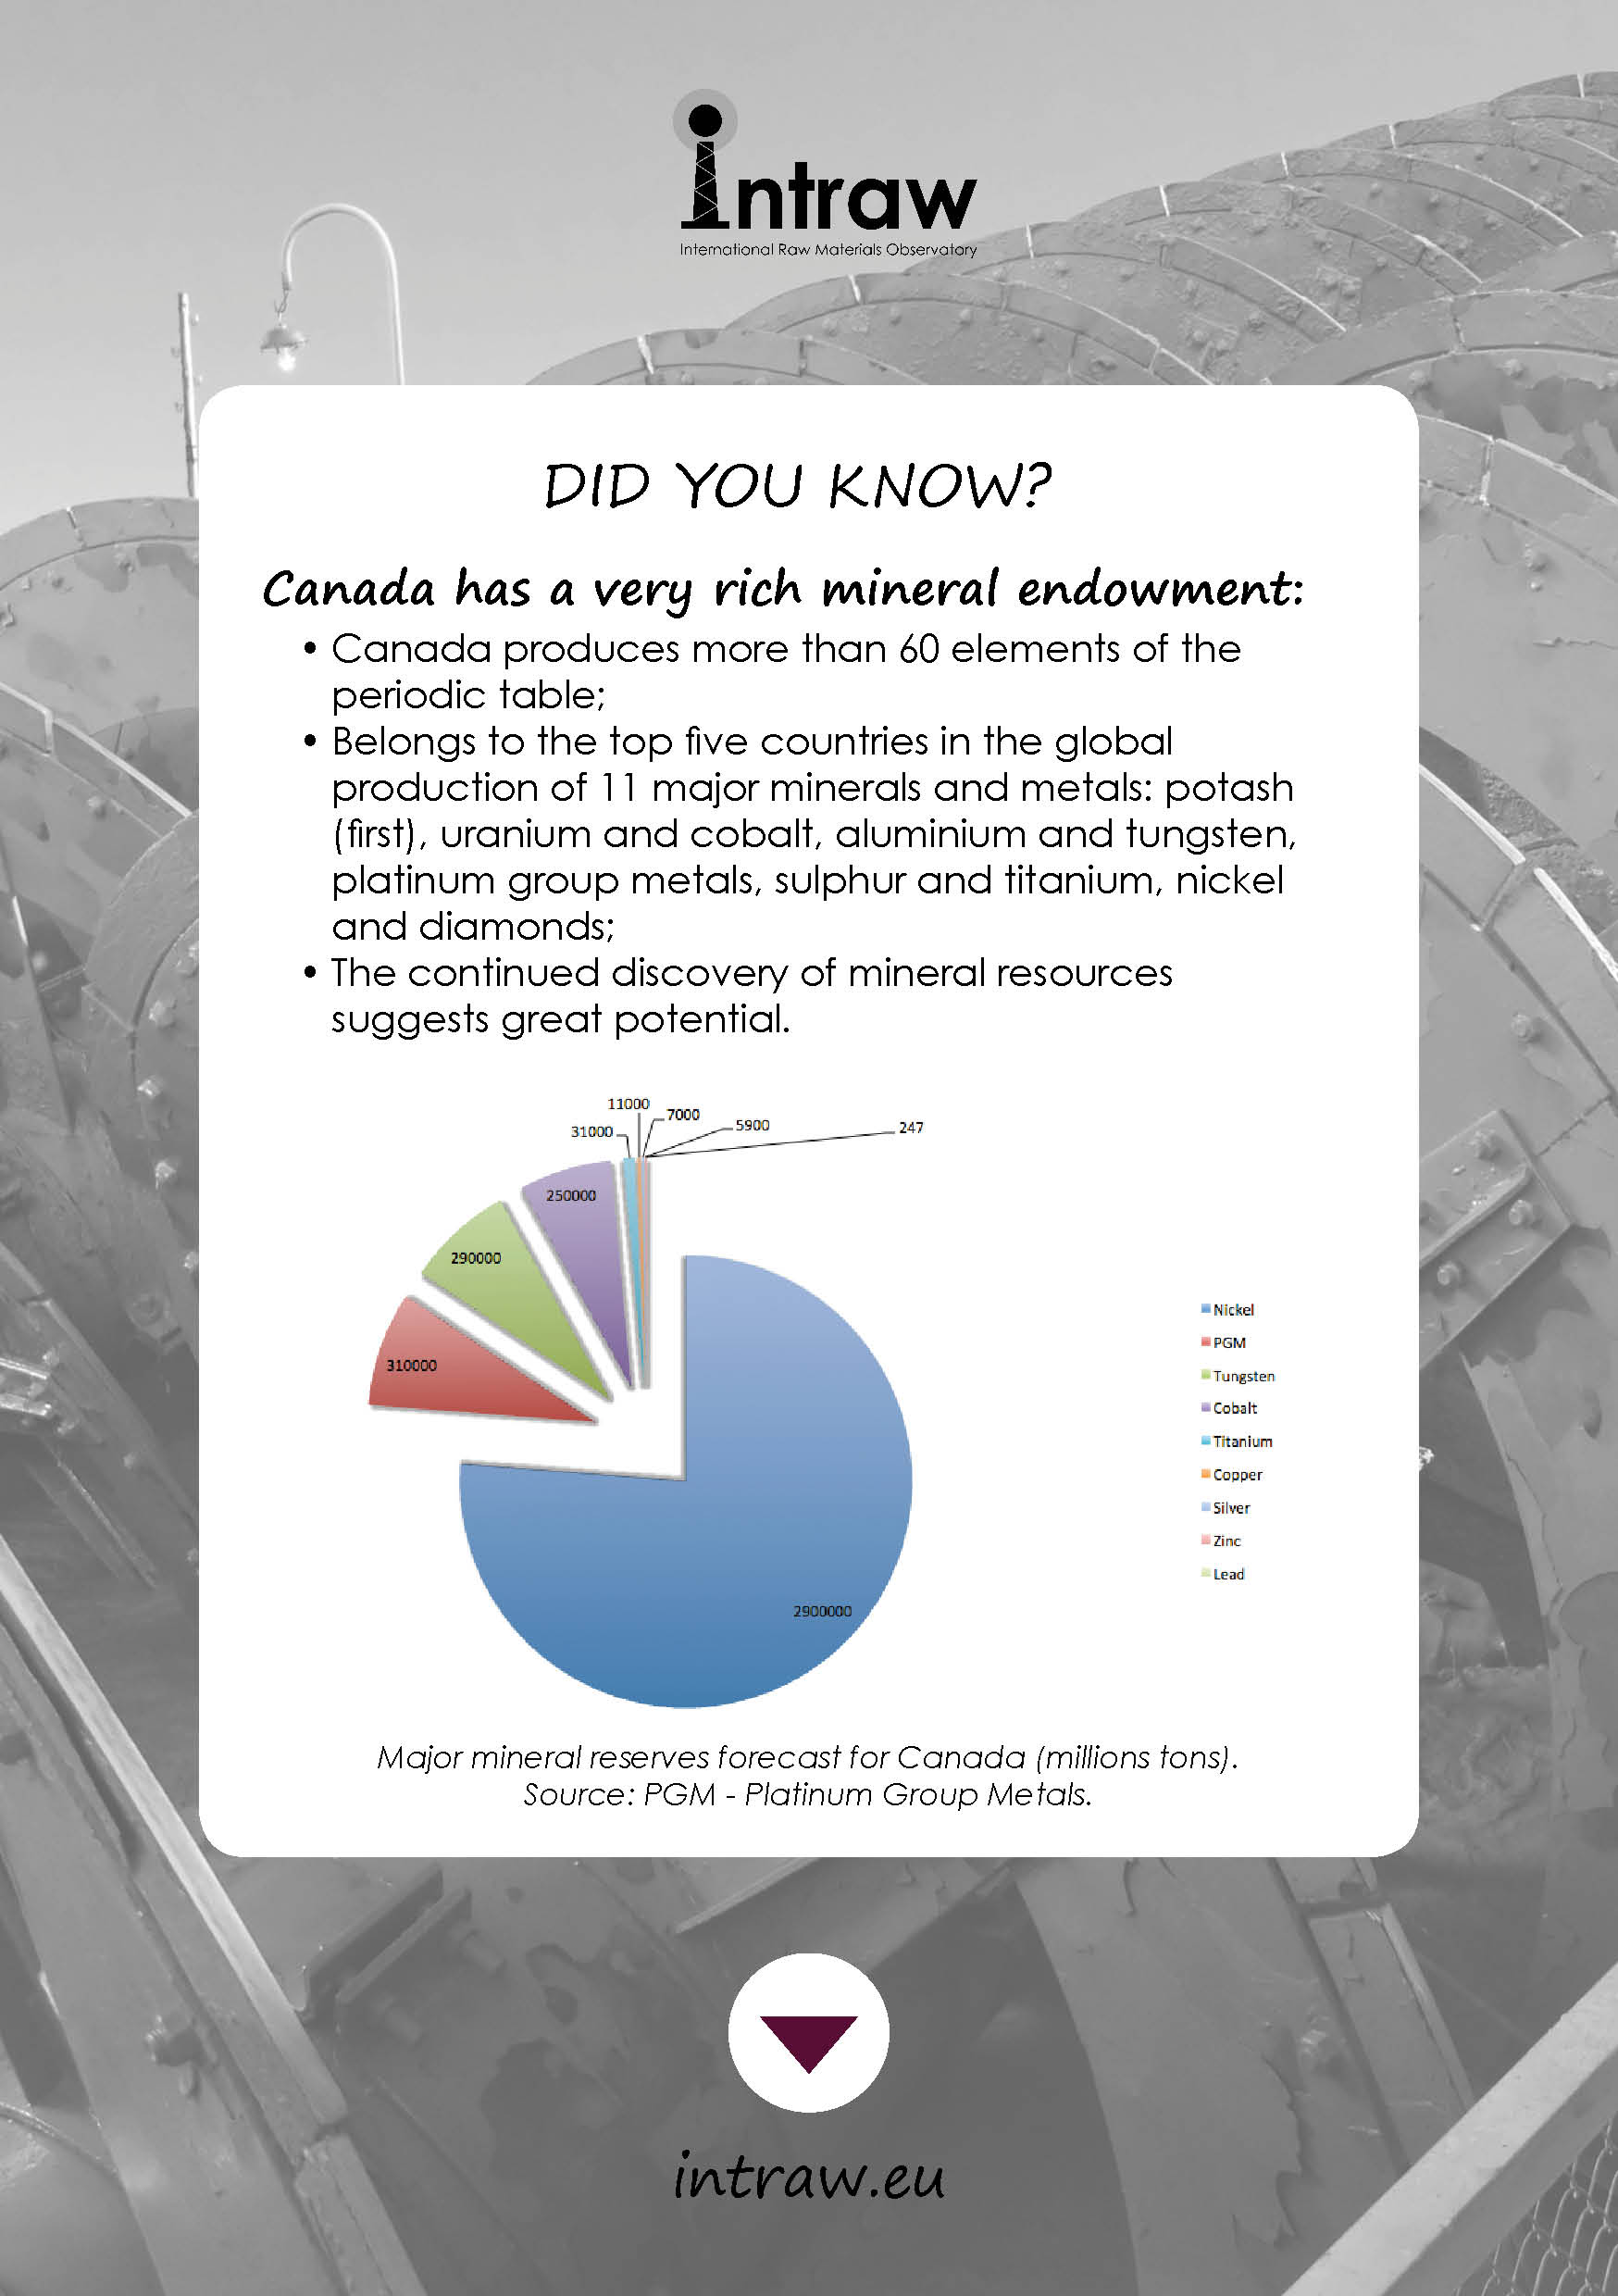 Second stop of our #DiscoverINTRAW : Canada! Discover its rich mining resources